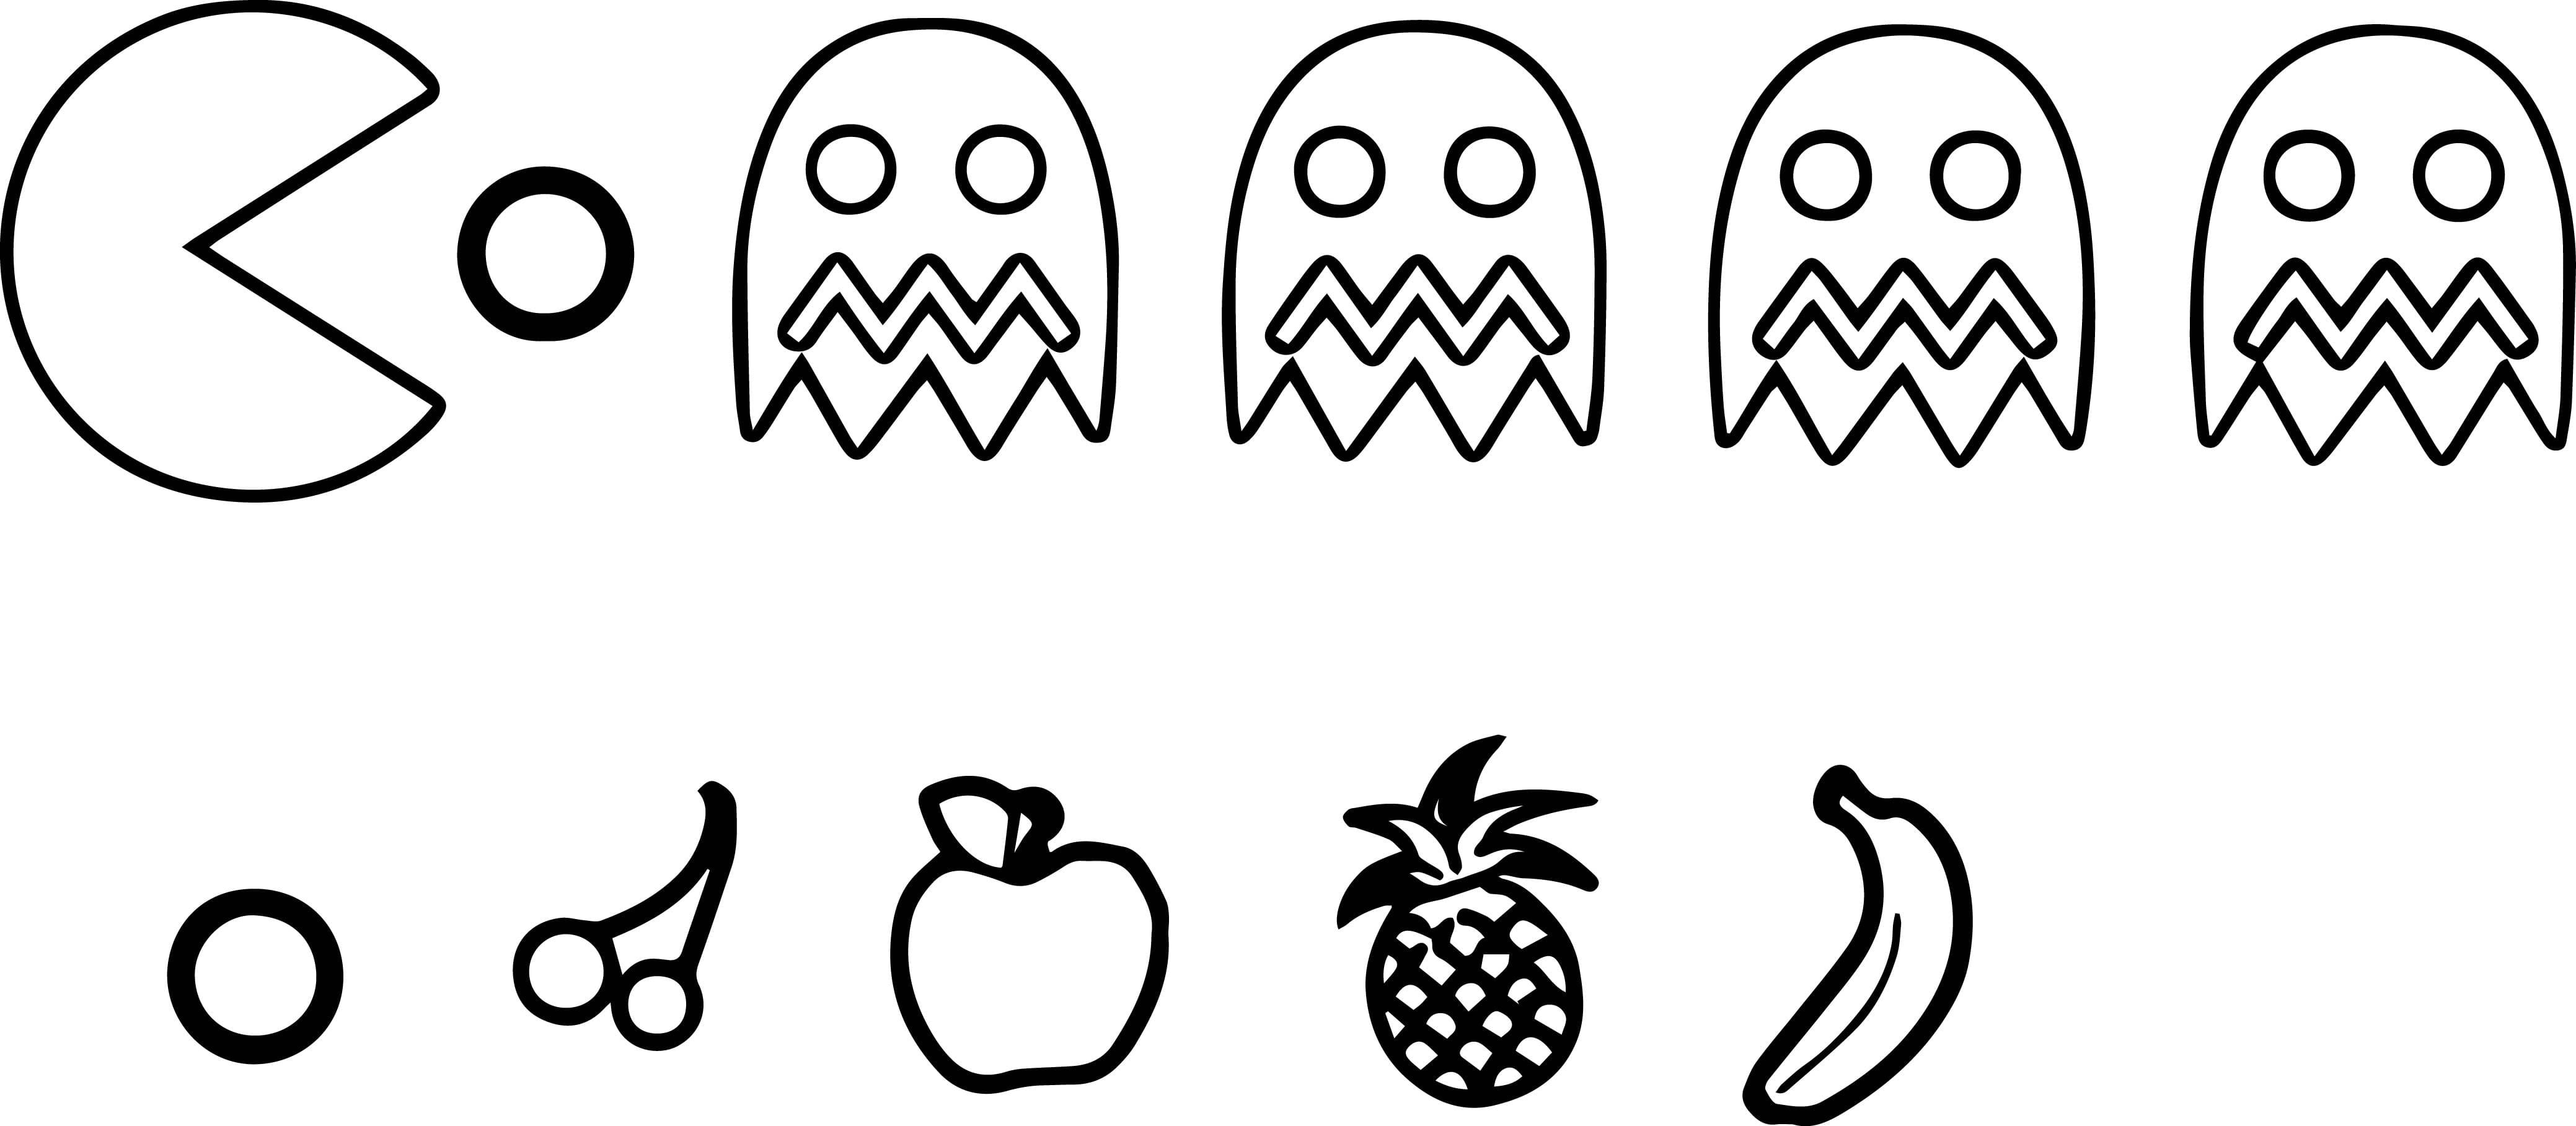 Simplistic Pacman Printables Pac Man Coloring Pages Luxury For